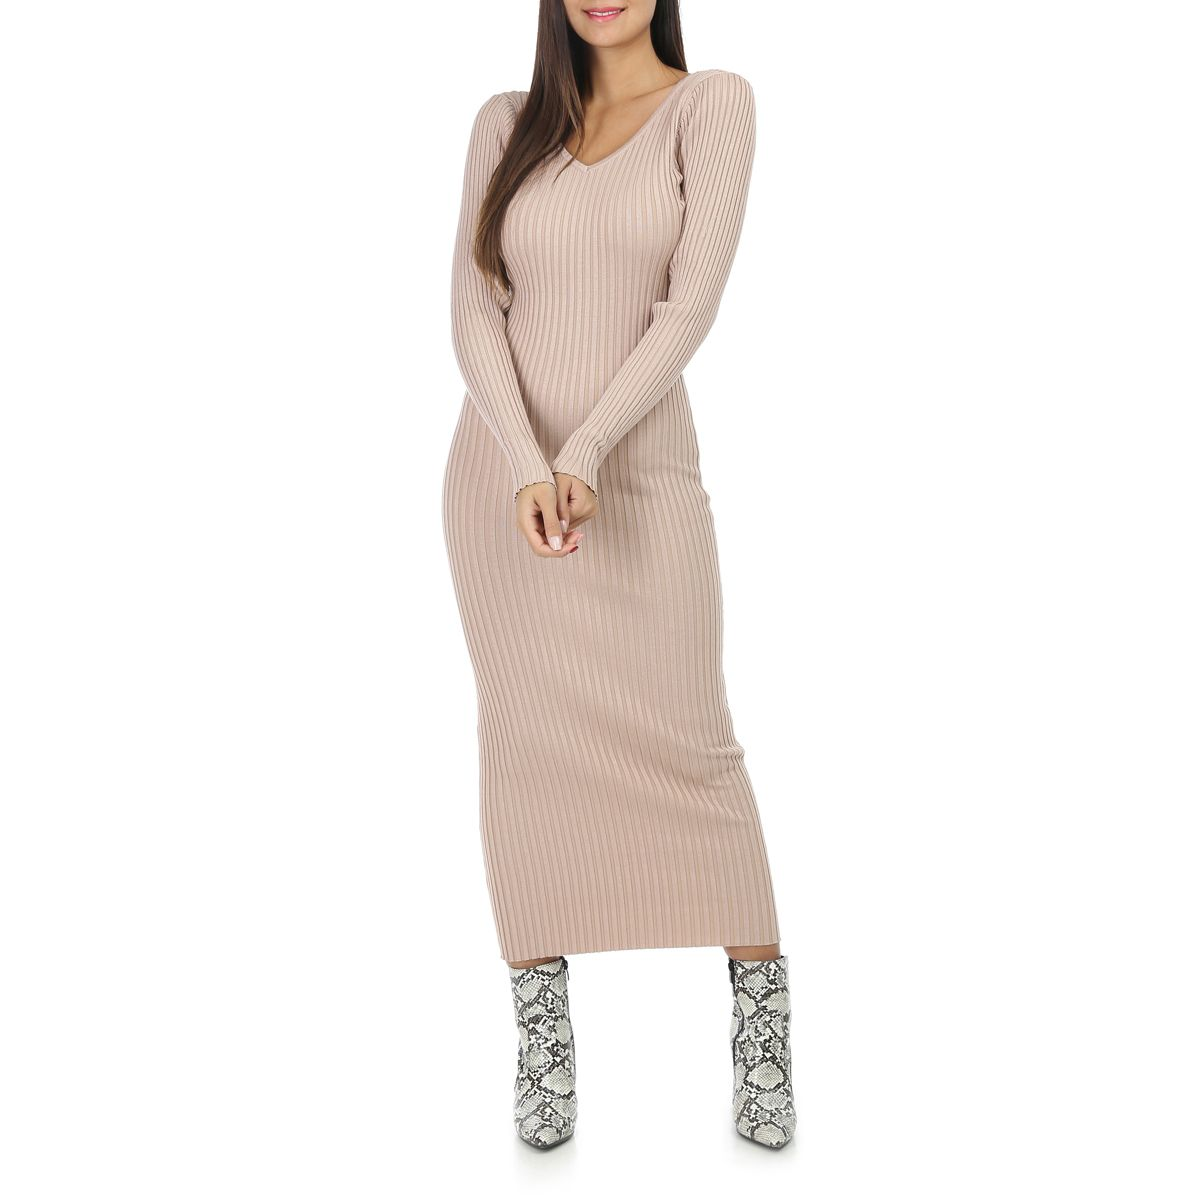 Robe Pull Longue Beige Cotelee A Col V